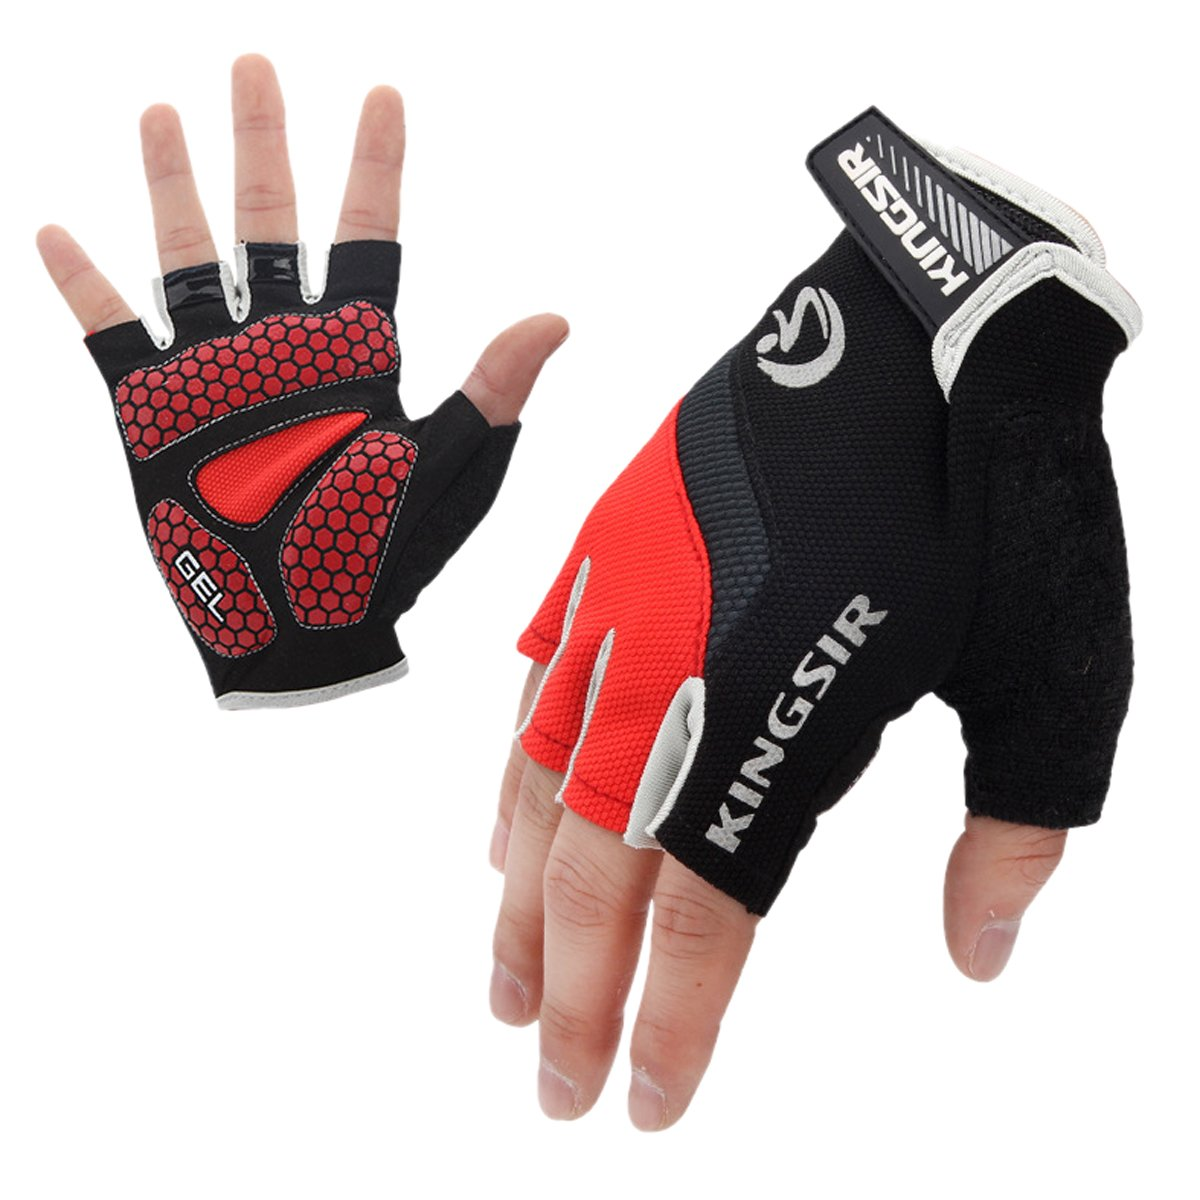 Cycling Mountain Bike Gloves Road Racing Bicycle Gloves Light Silicone Gel Pad Biking Half Finger Gloves AHATECH